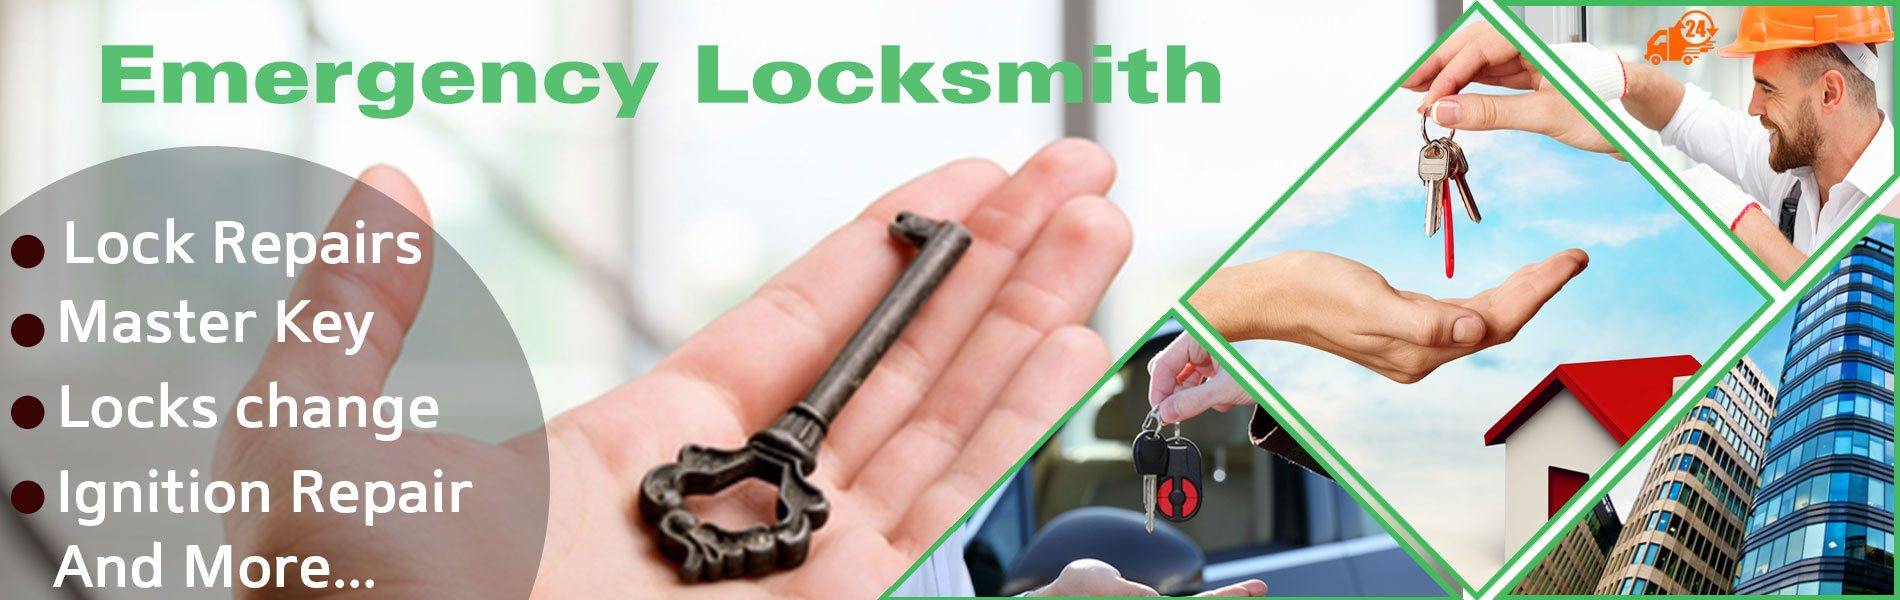 Lock Safe Services Gilbert, AZ 480-666-1747